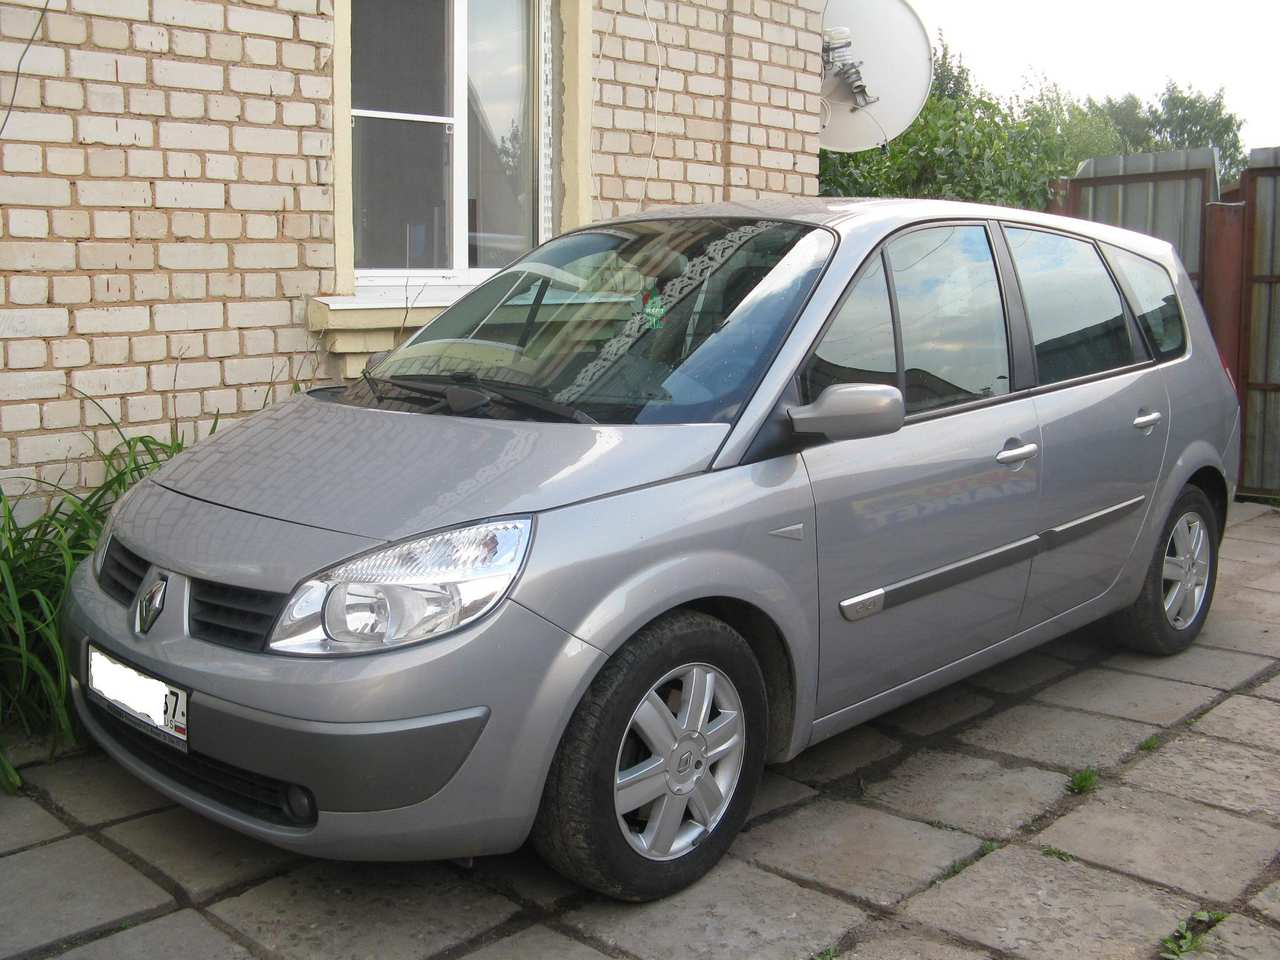 2005 renault scenic pics 1 5 diesel ff manual for sale. Black Bedroom Furniture Sets. Home Design Ideas